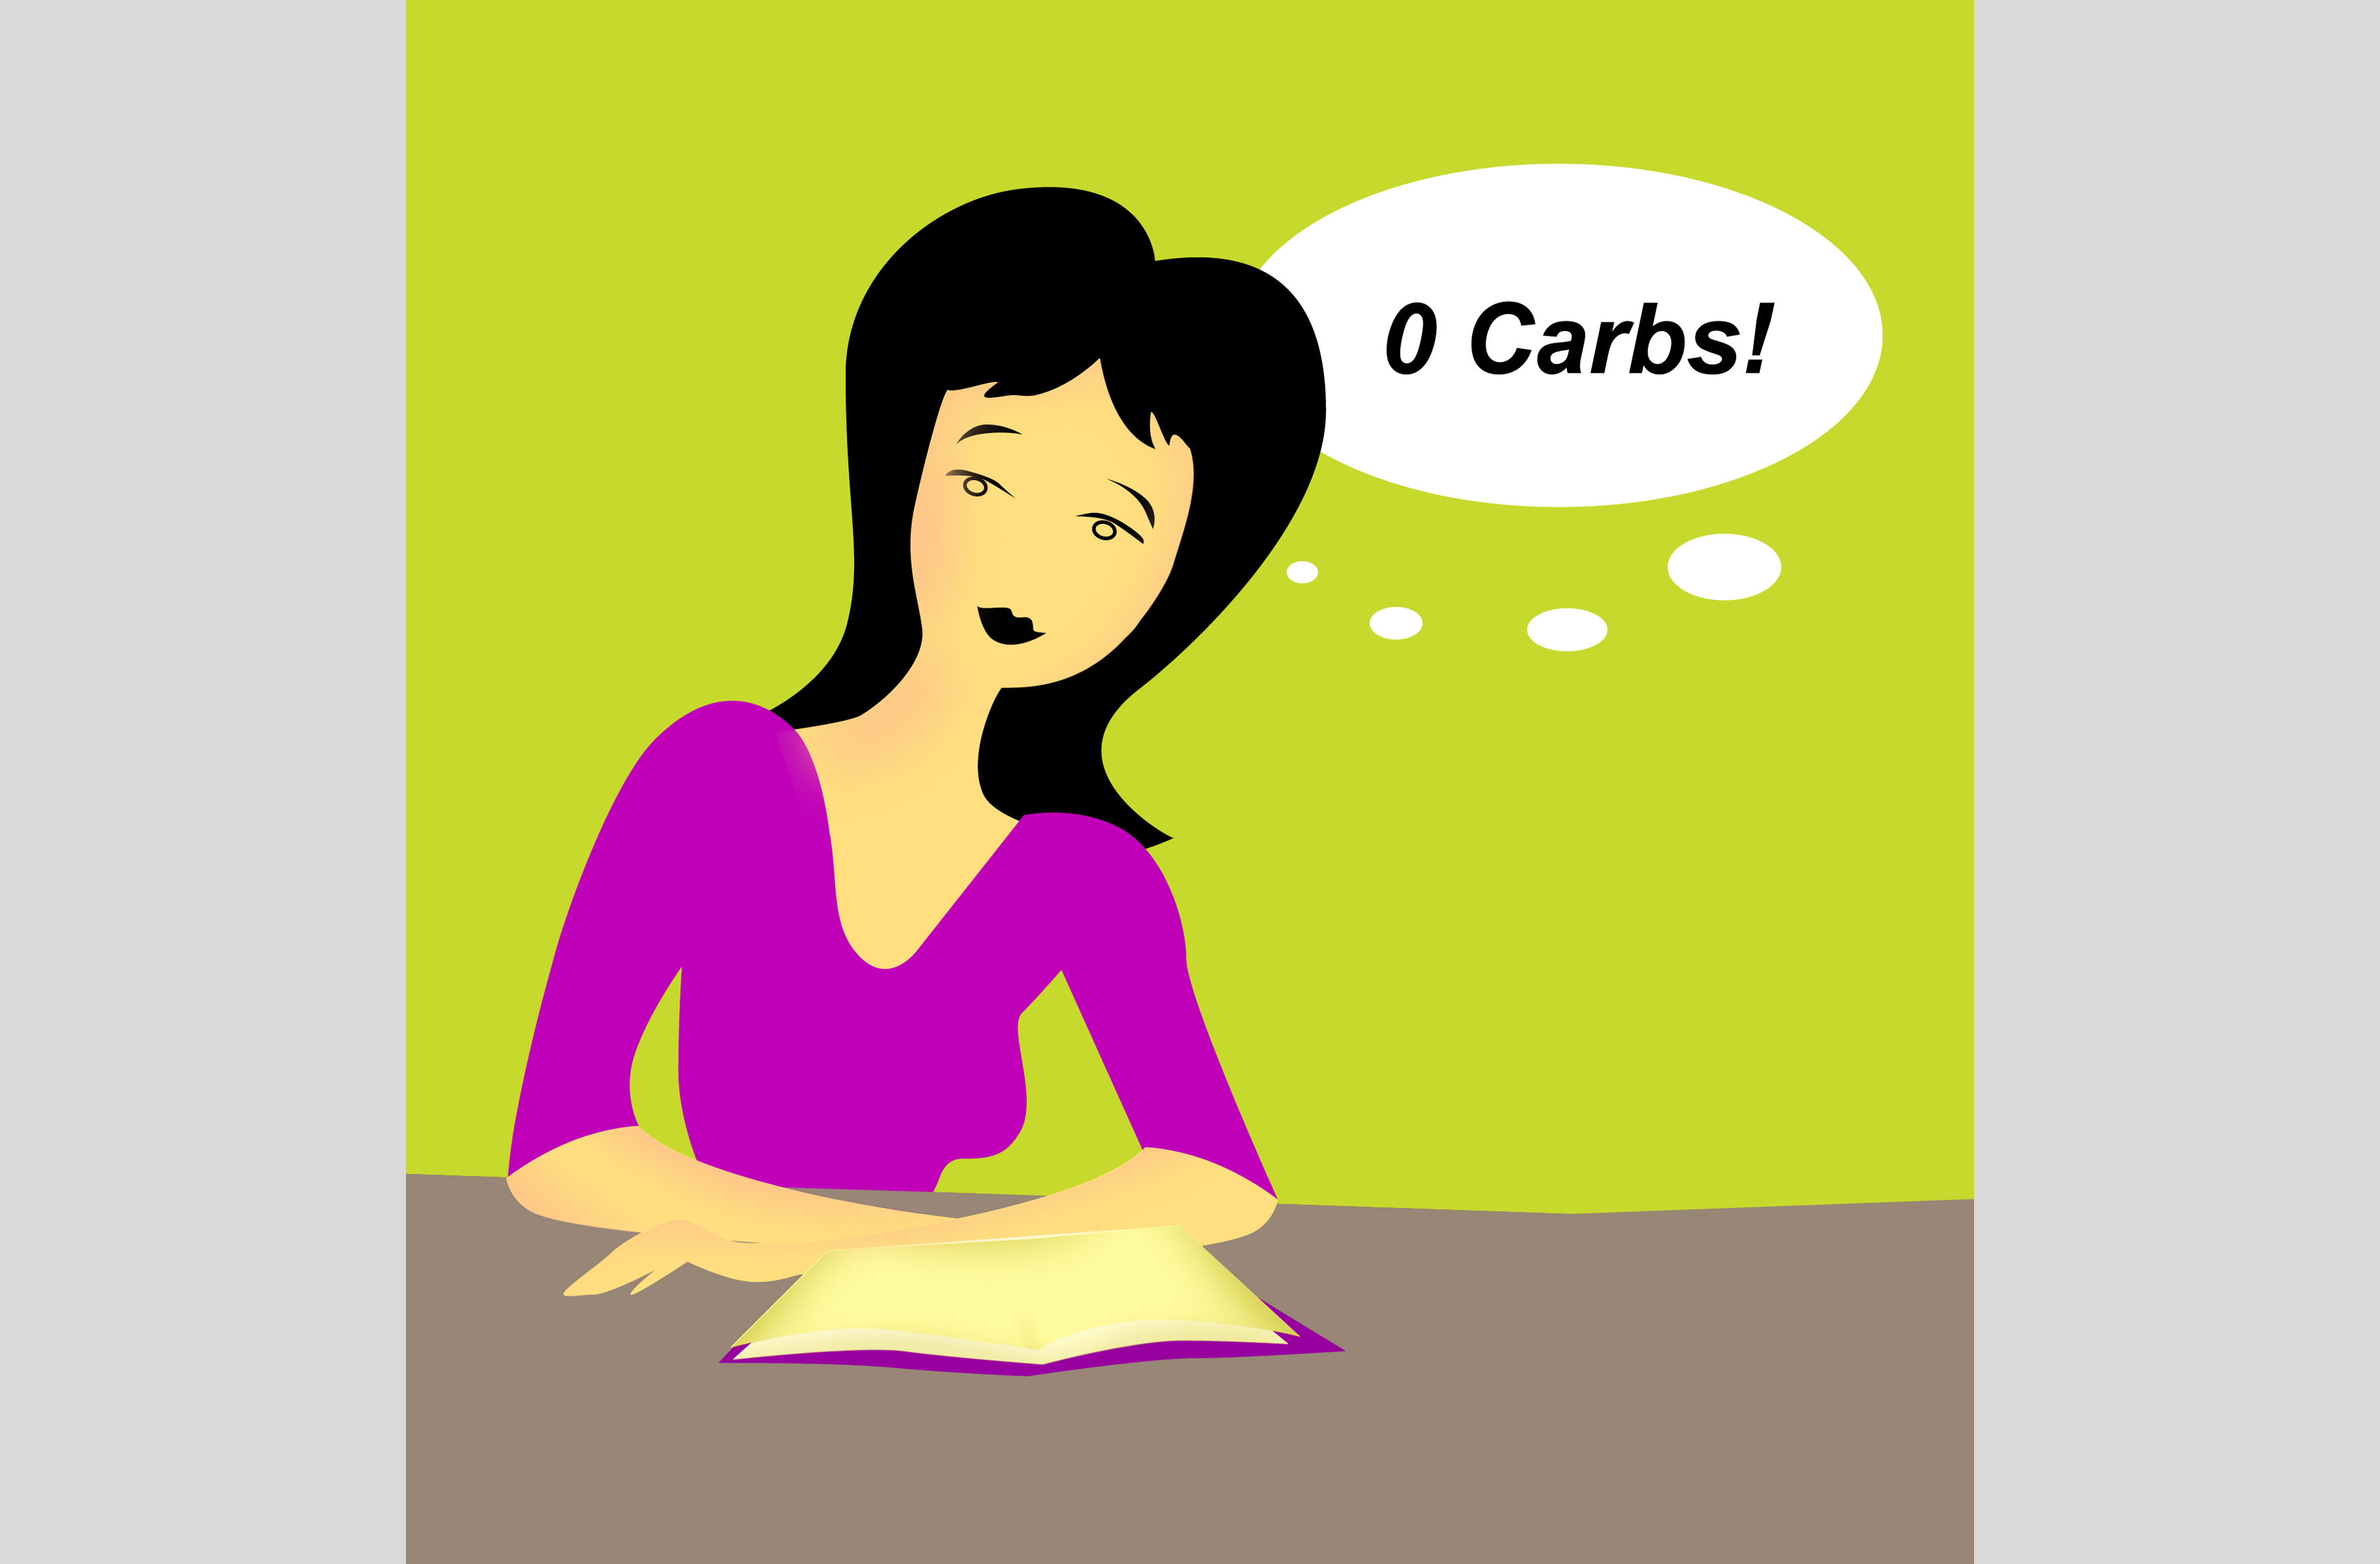 Illustration - CarbLite - Zero Carbs